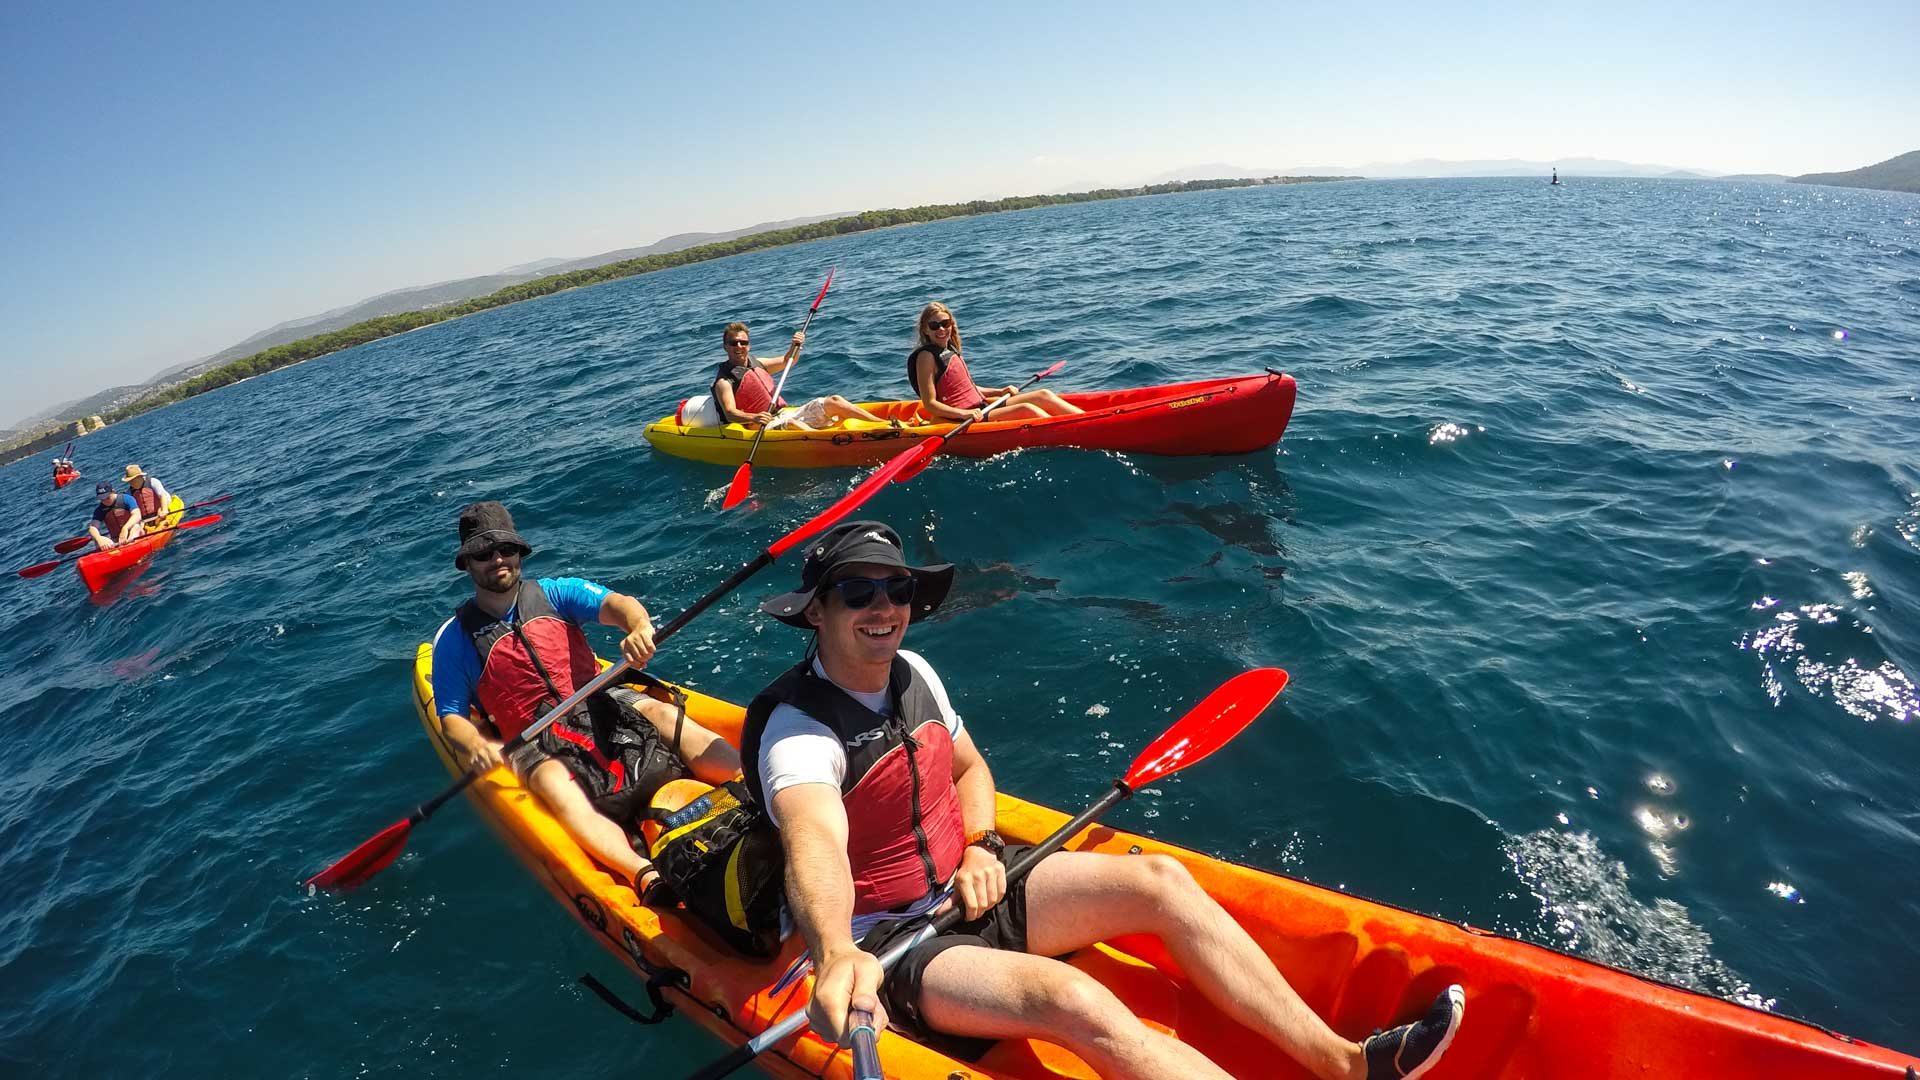 Sea Kayaking Zlarin Island Croatia Raftrek Travel 1 Of